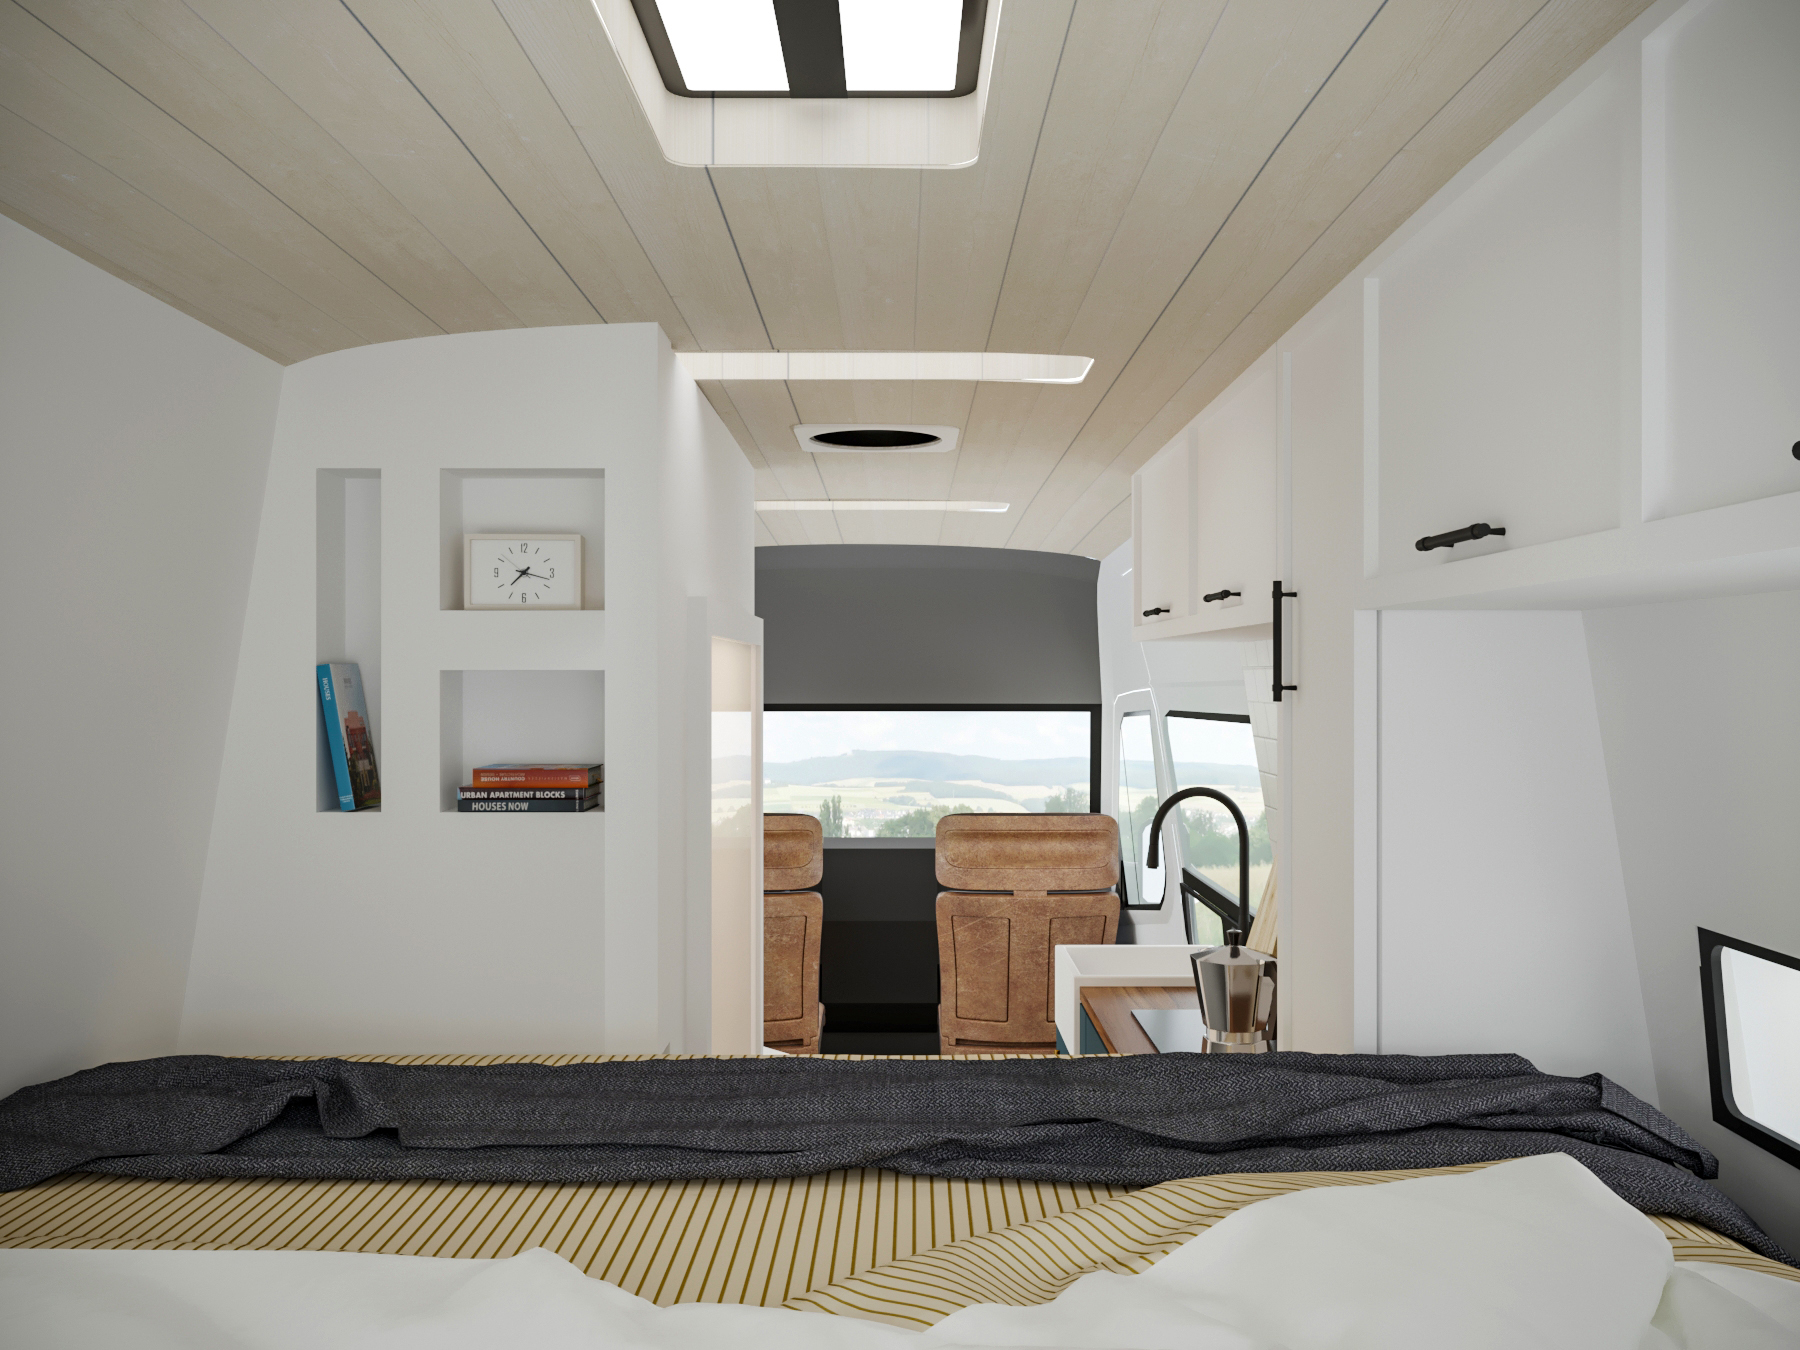 This cozy sleeping nook will be the perfect end to your day on the road. The side bumpouts make a comfortable sleeping space and upper cabinets will house your clothes.